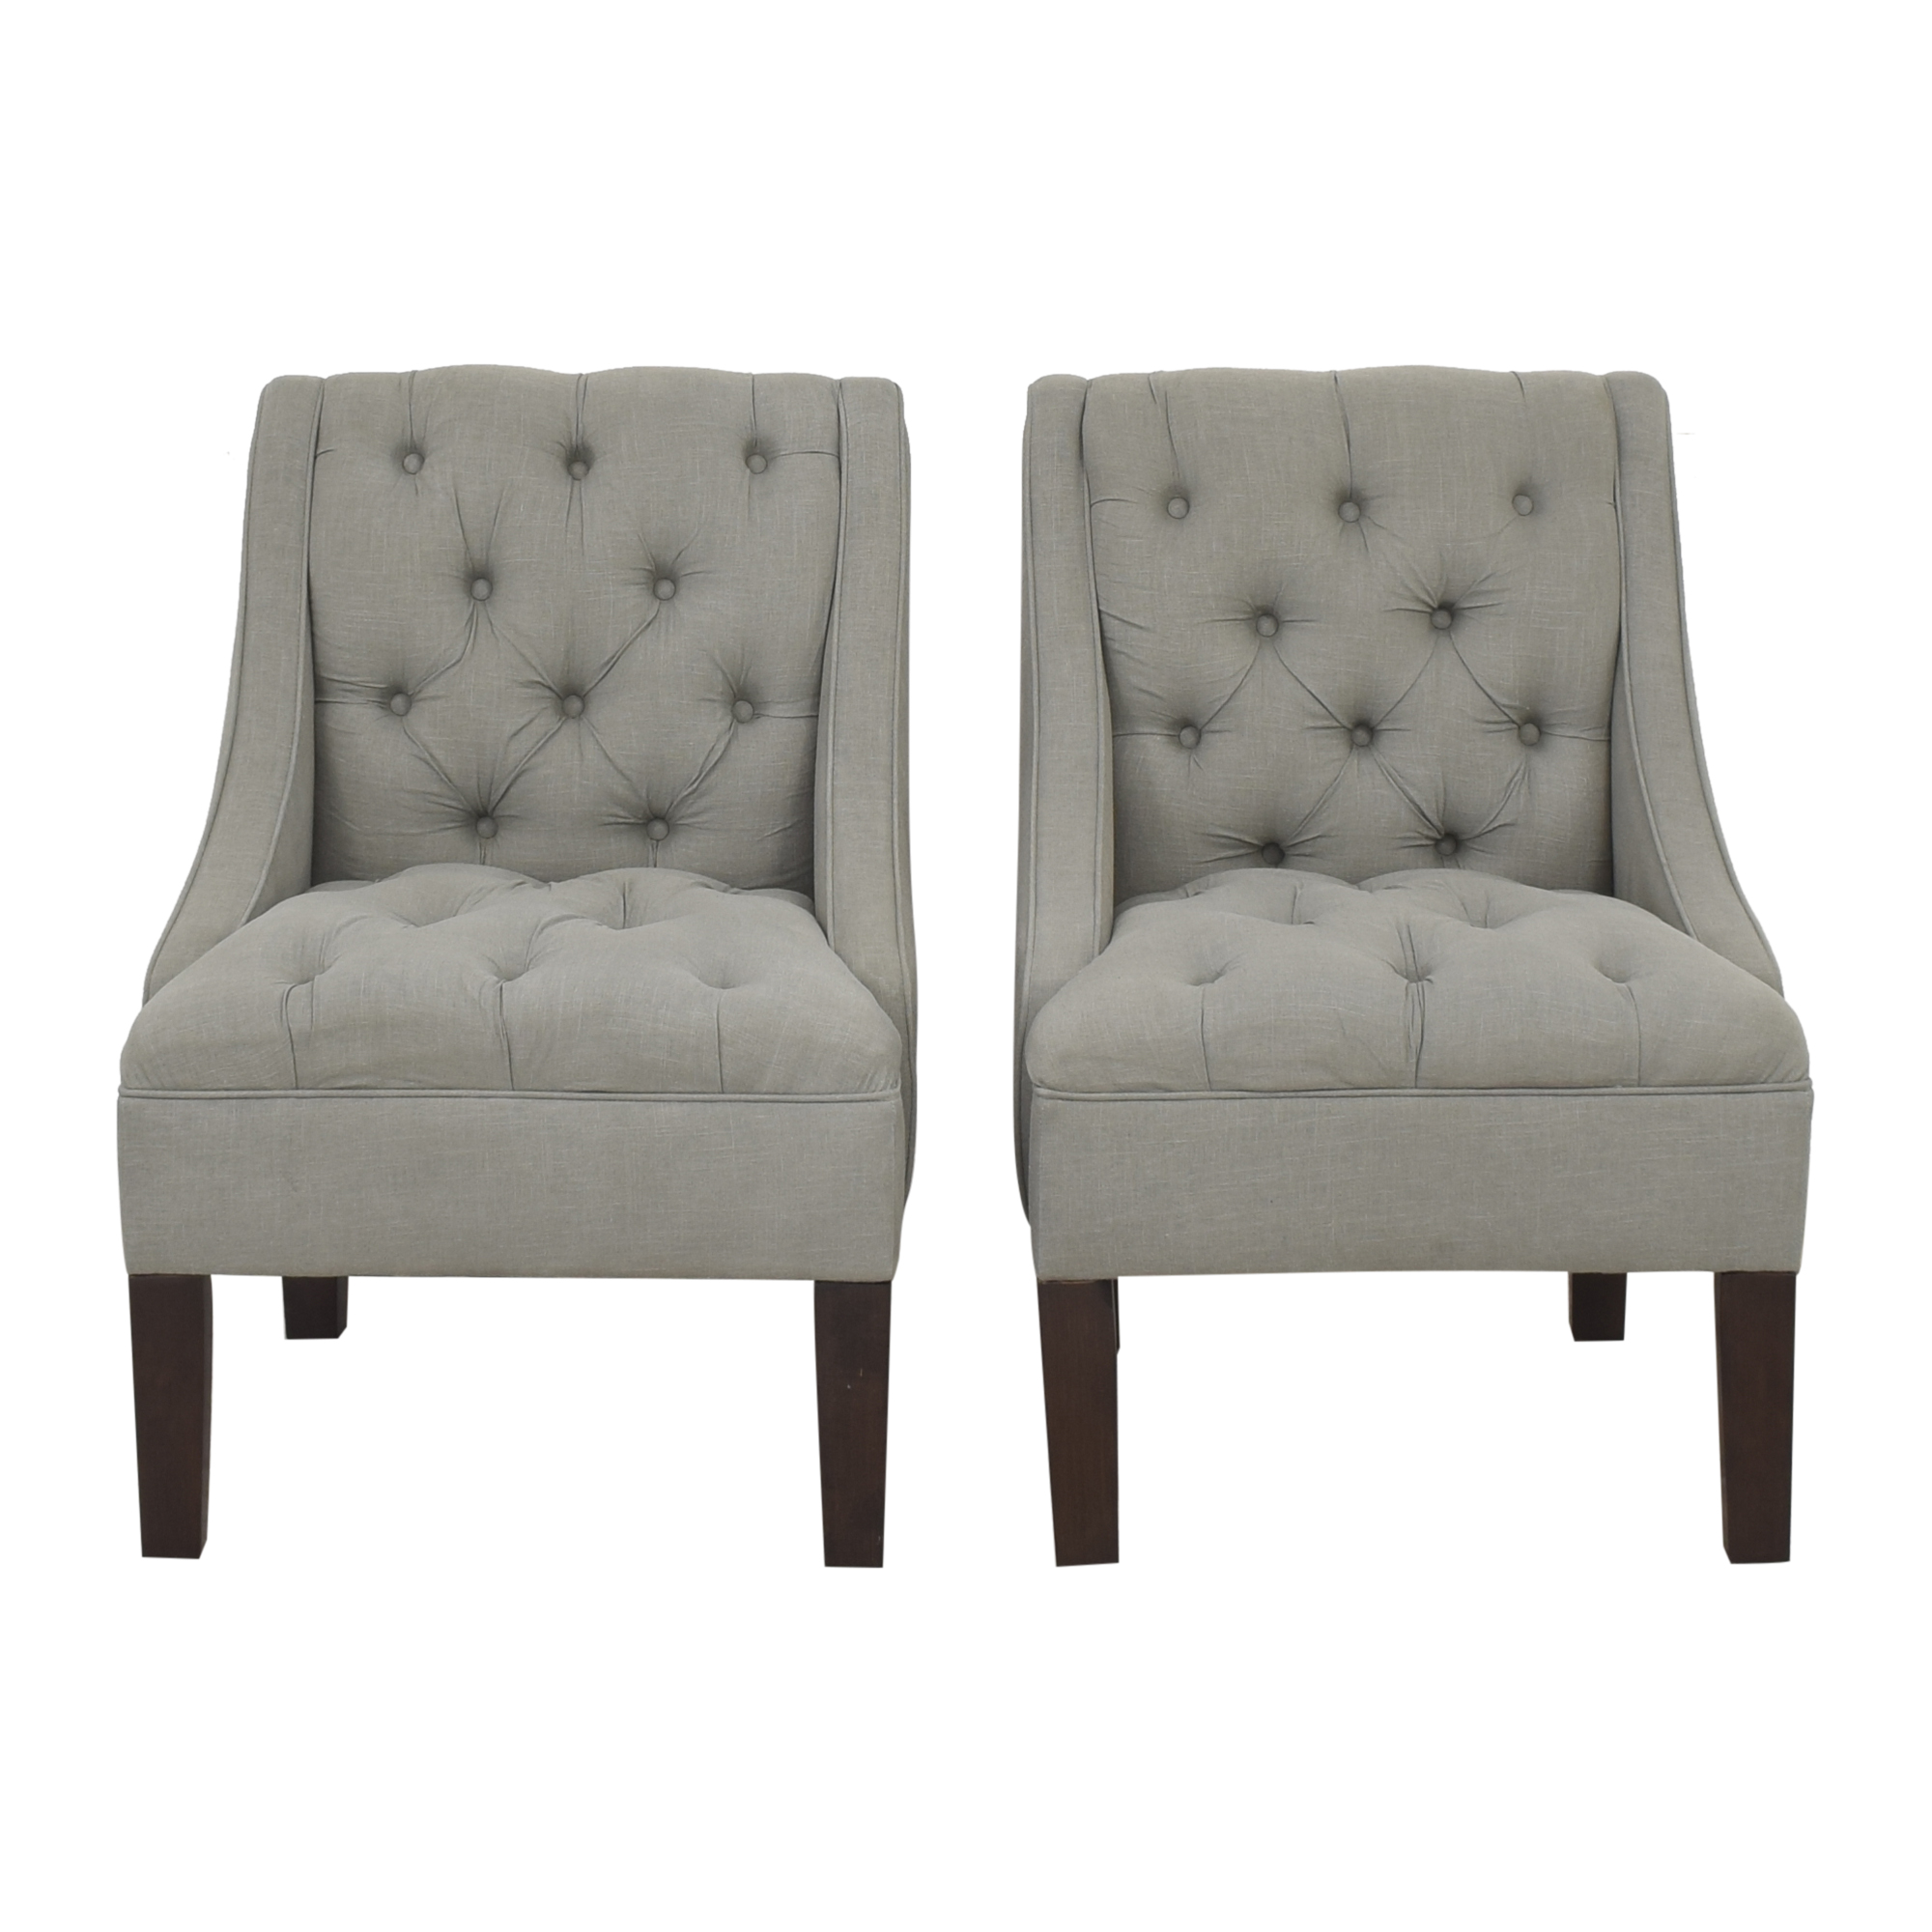 Skyline Furniture Skyline Furniture Tufted Dining Chairs Chairs